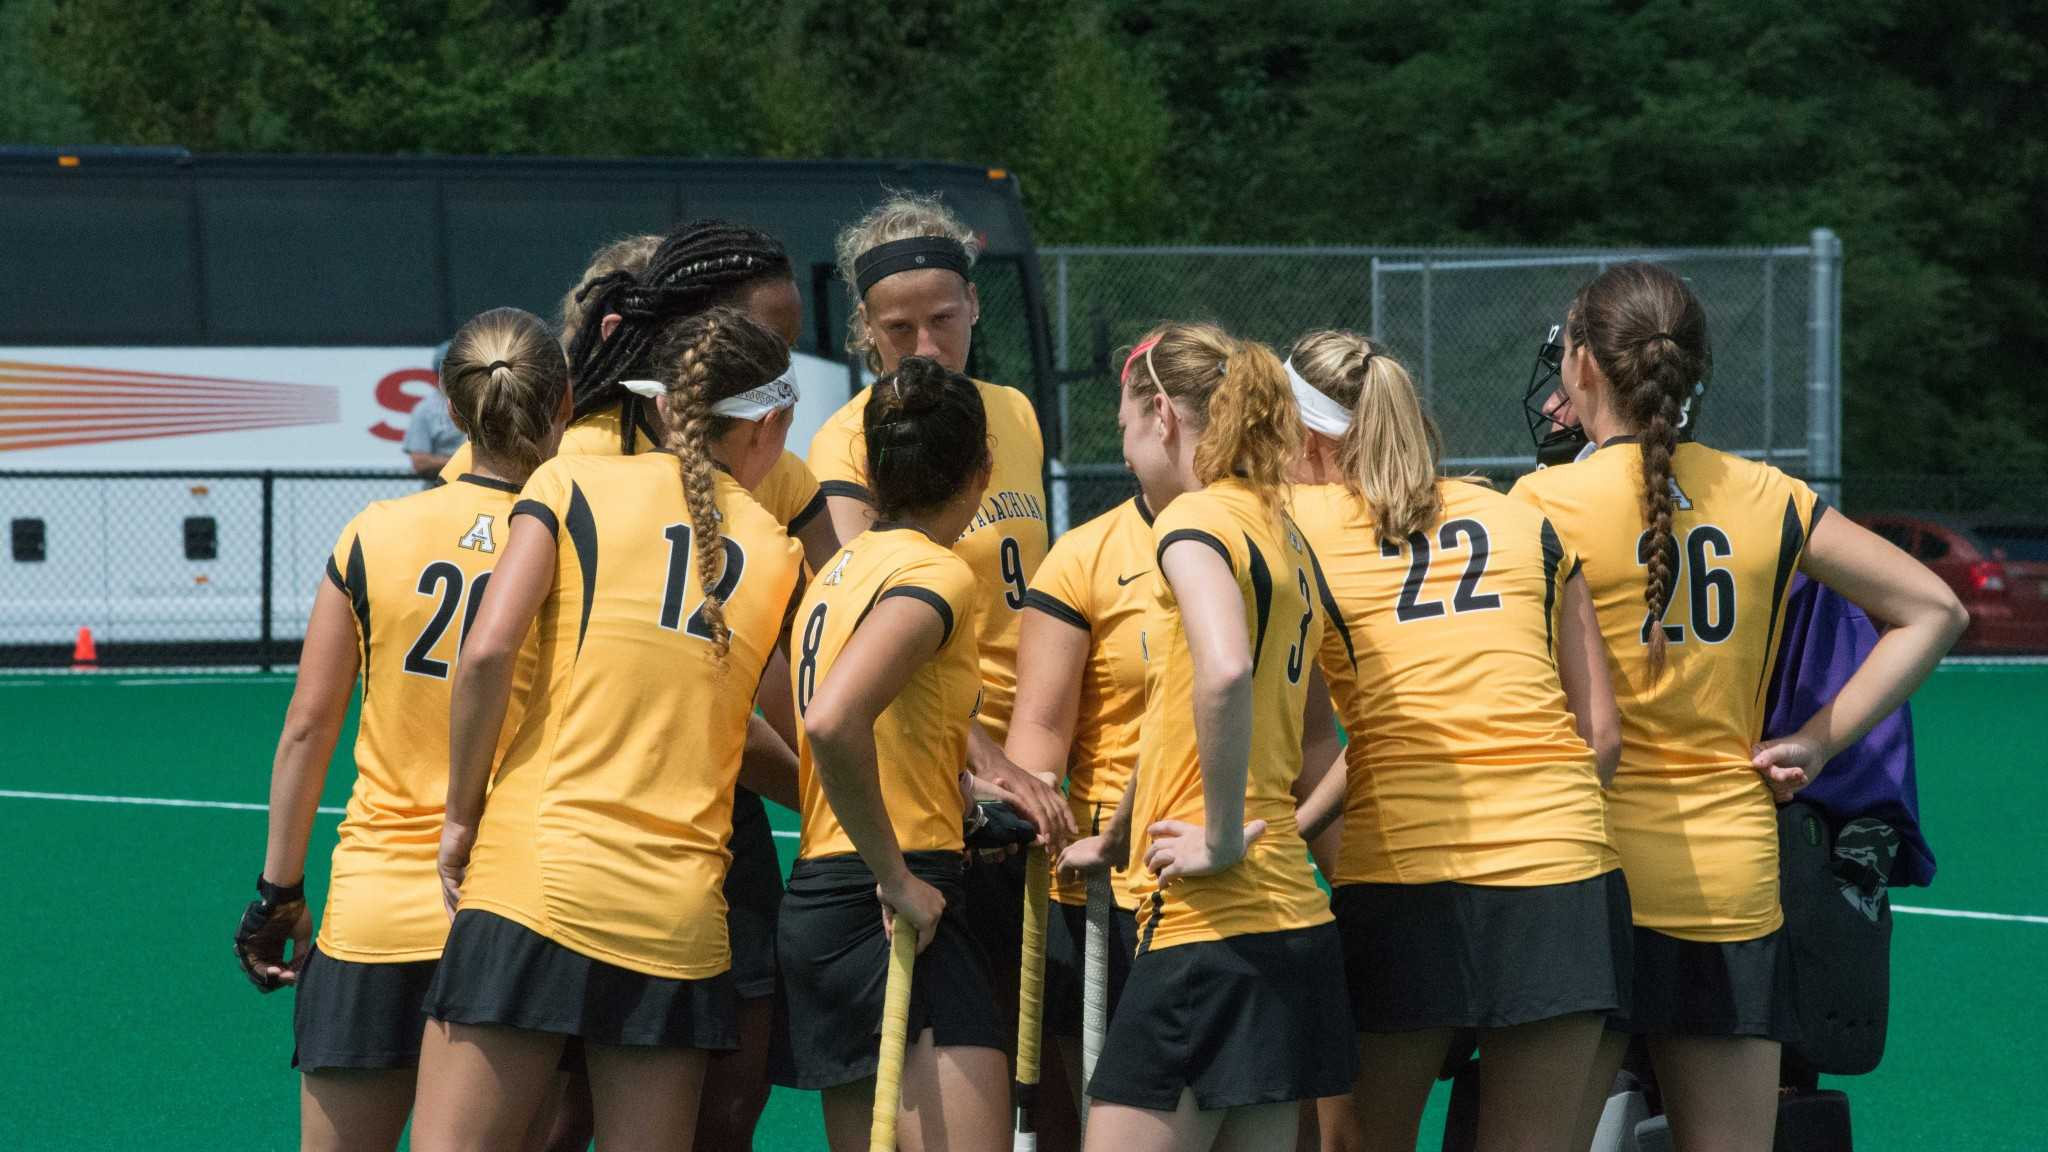 The Appalachian State field hockey team huddles up before a match during the 2014-15 season. Under new coach Meghan Dawson, the team is 1-0 in exhibition play.